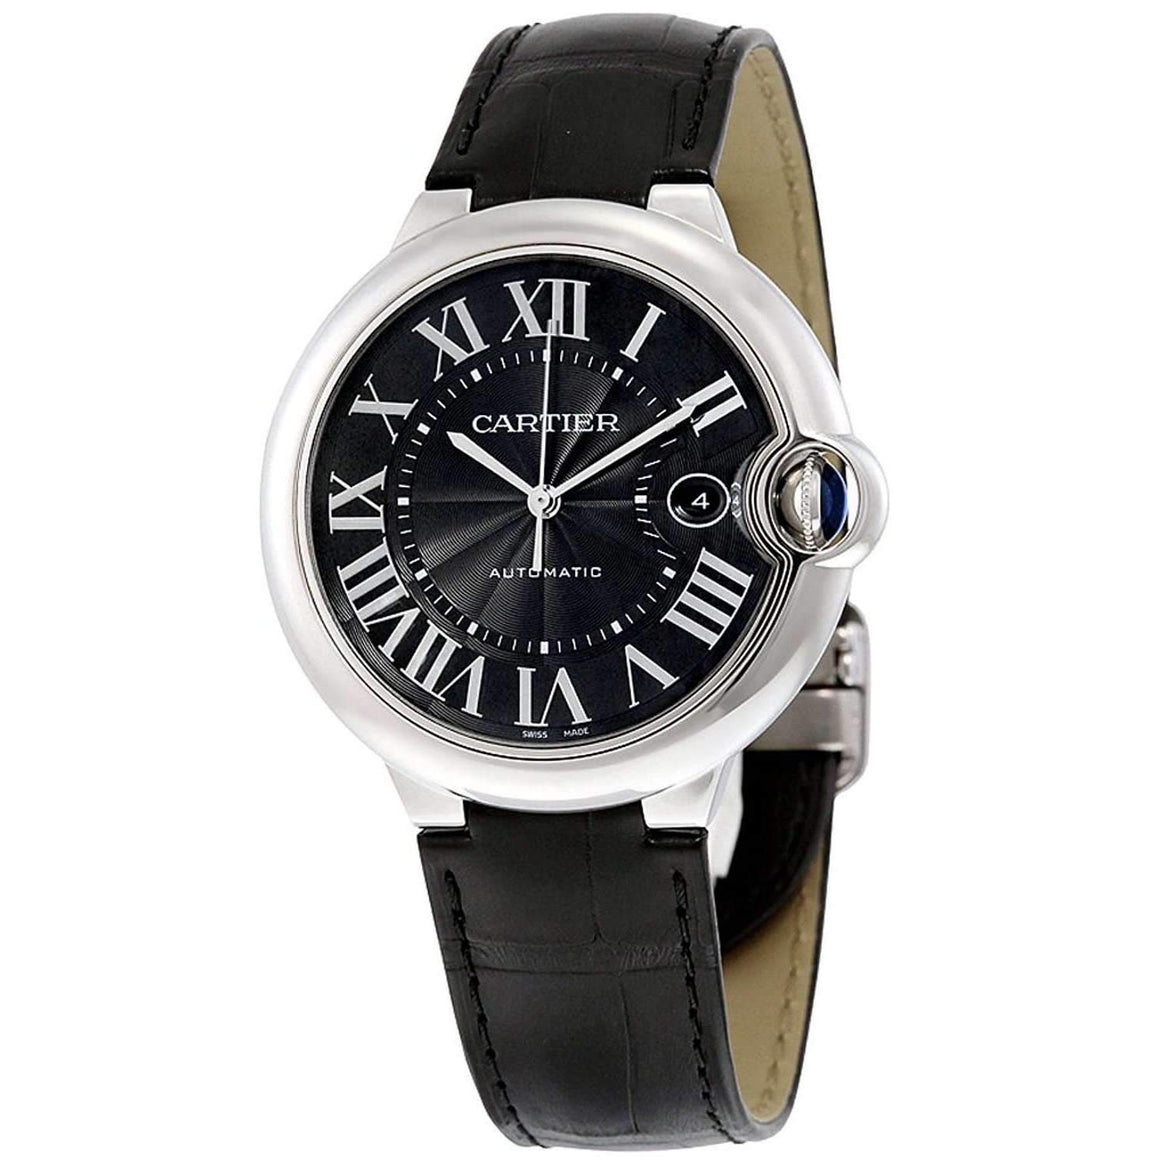 CARTIER BALLON BLEU BLACK 42 MM DIAL MEN WATCH  WSBB0003 - ROOK JAPAN